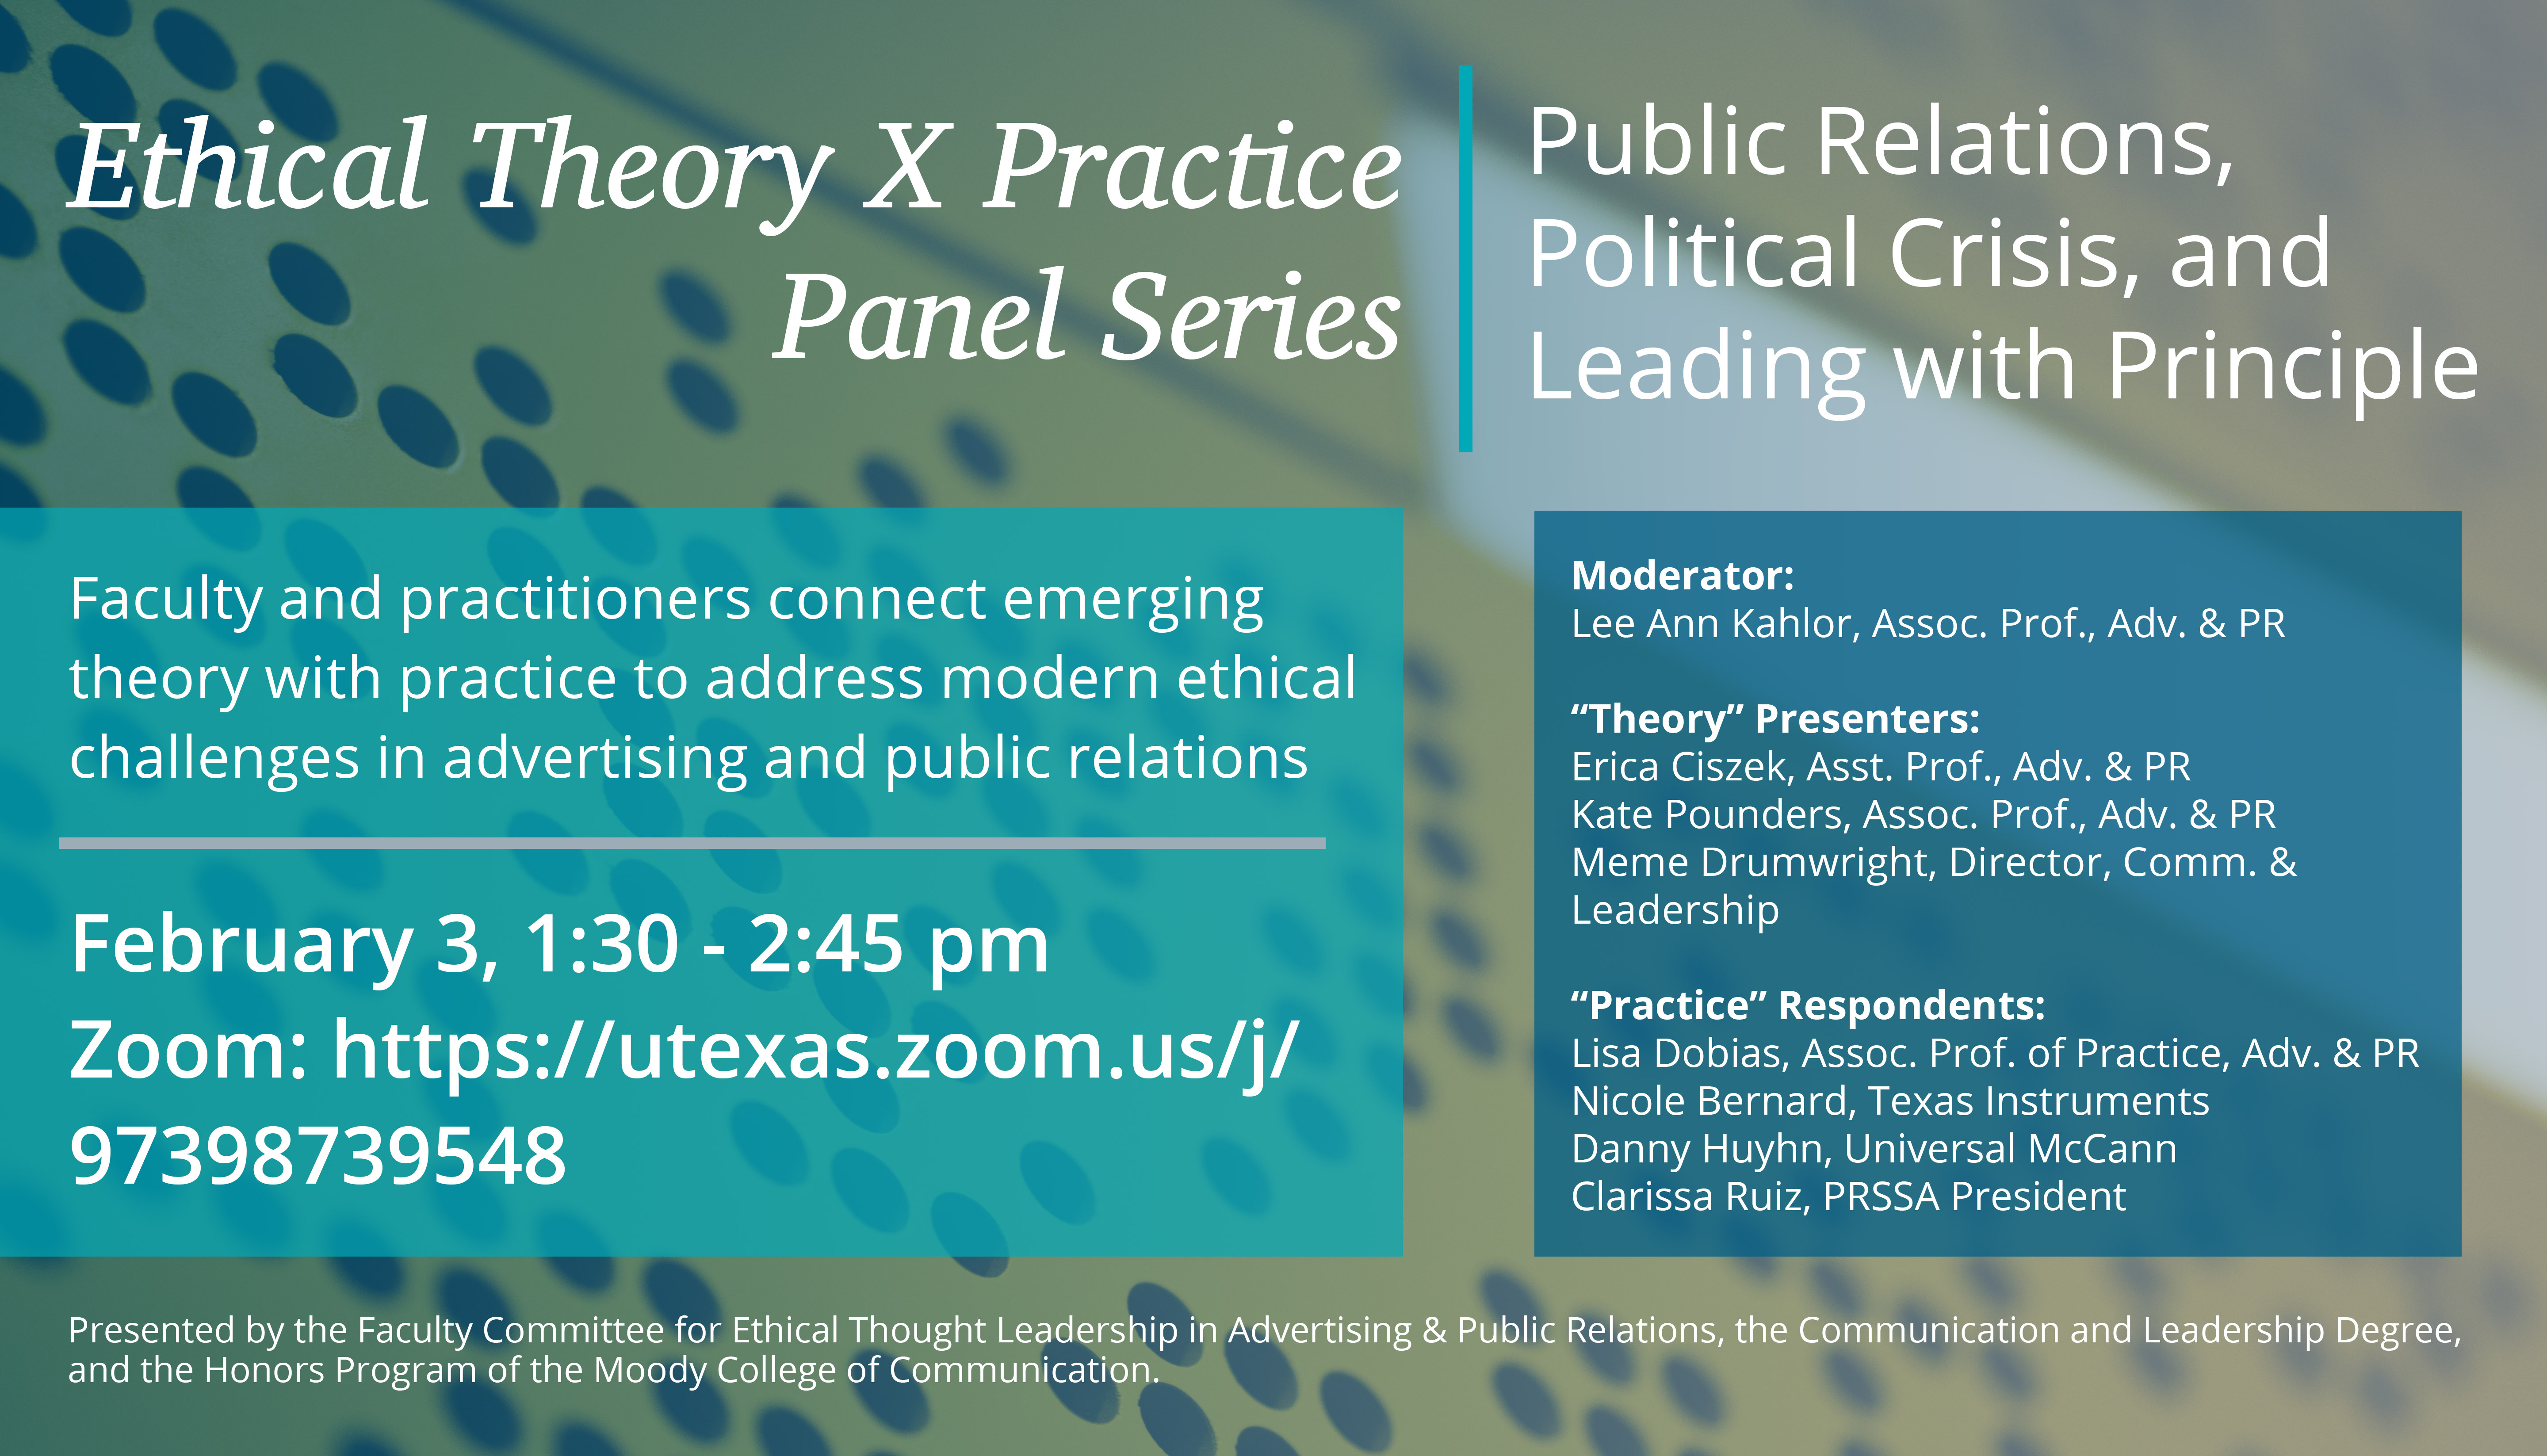 Ethical Theory X Practice Panel Series